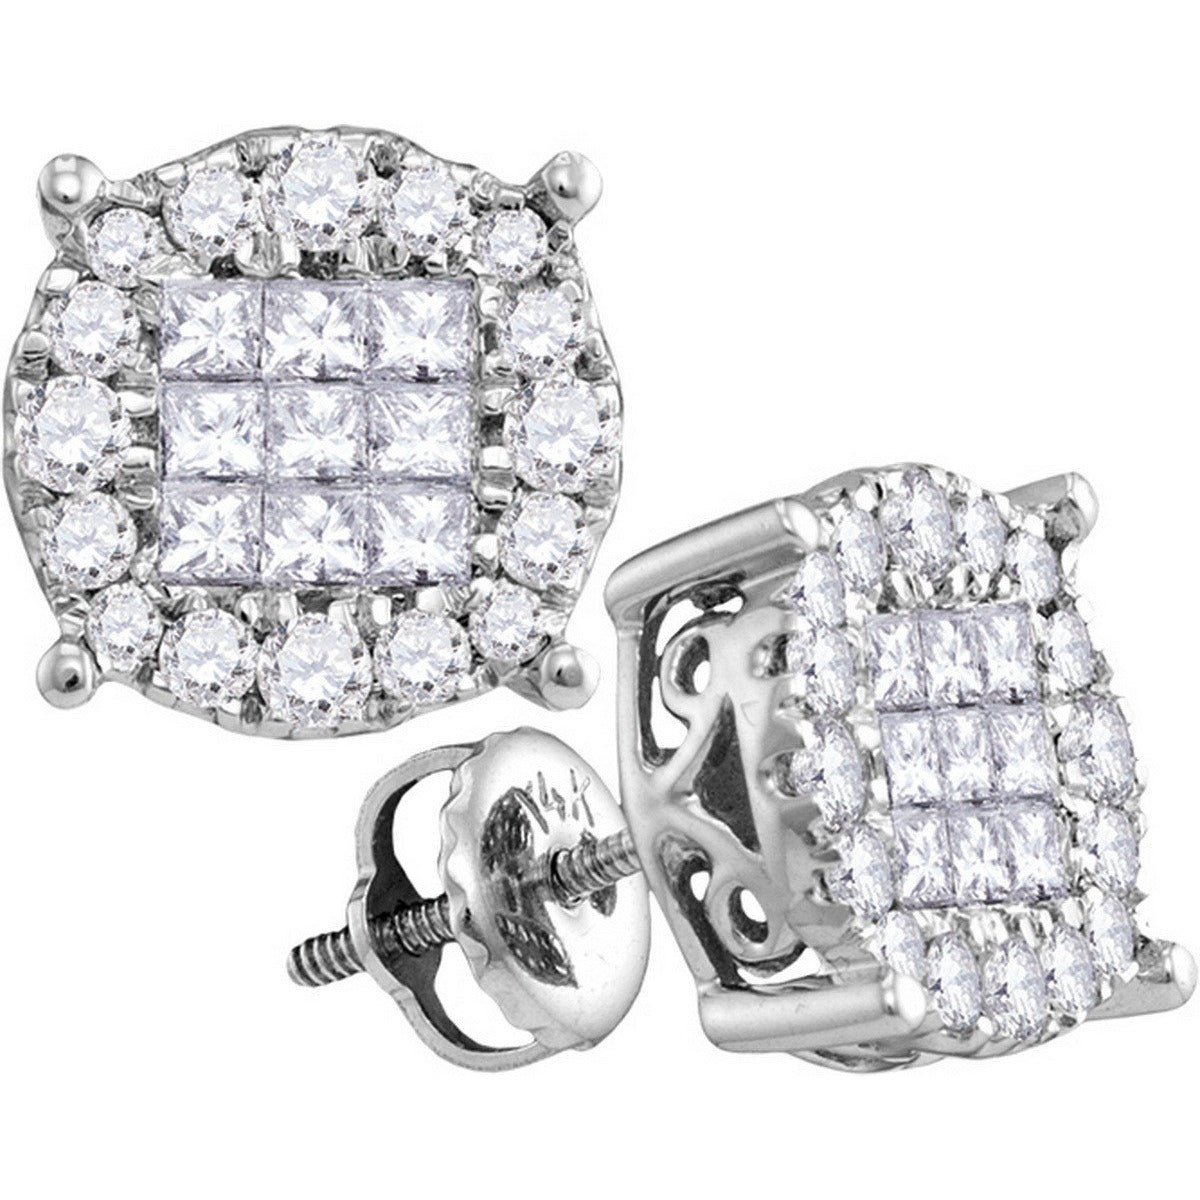 14kt White Gold Womens Princess Diamond Soleil Cluster Earrings 1.00 Cttw 63181 - shirin-diamonds